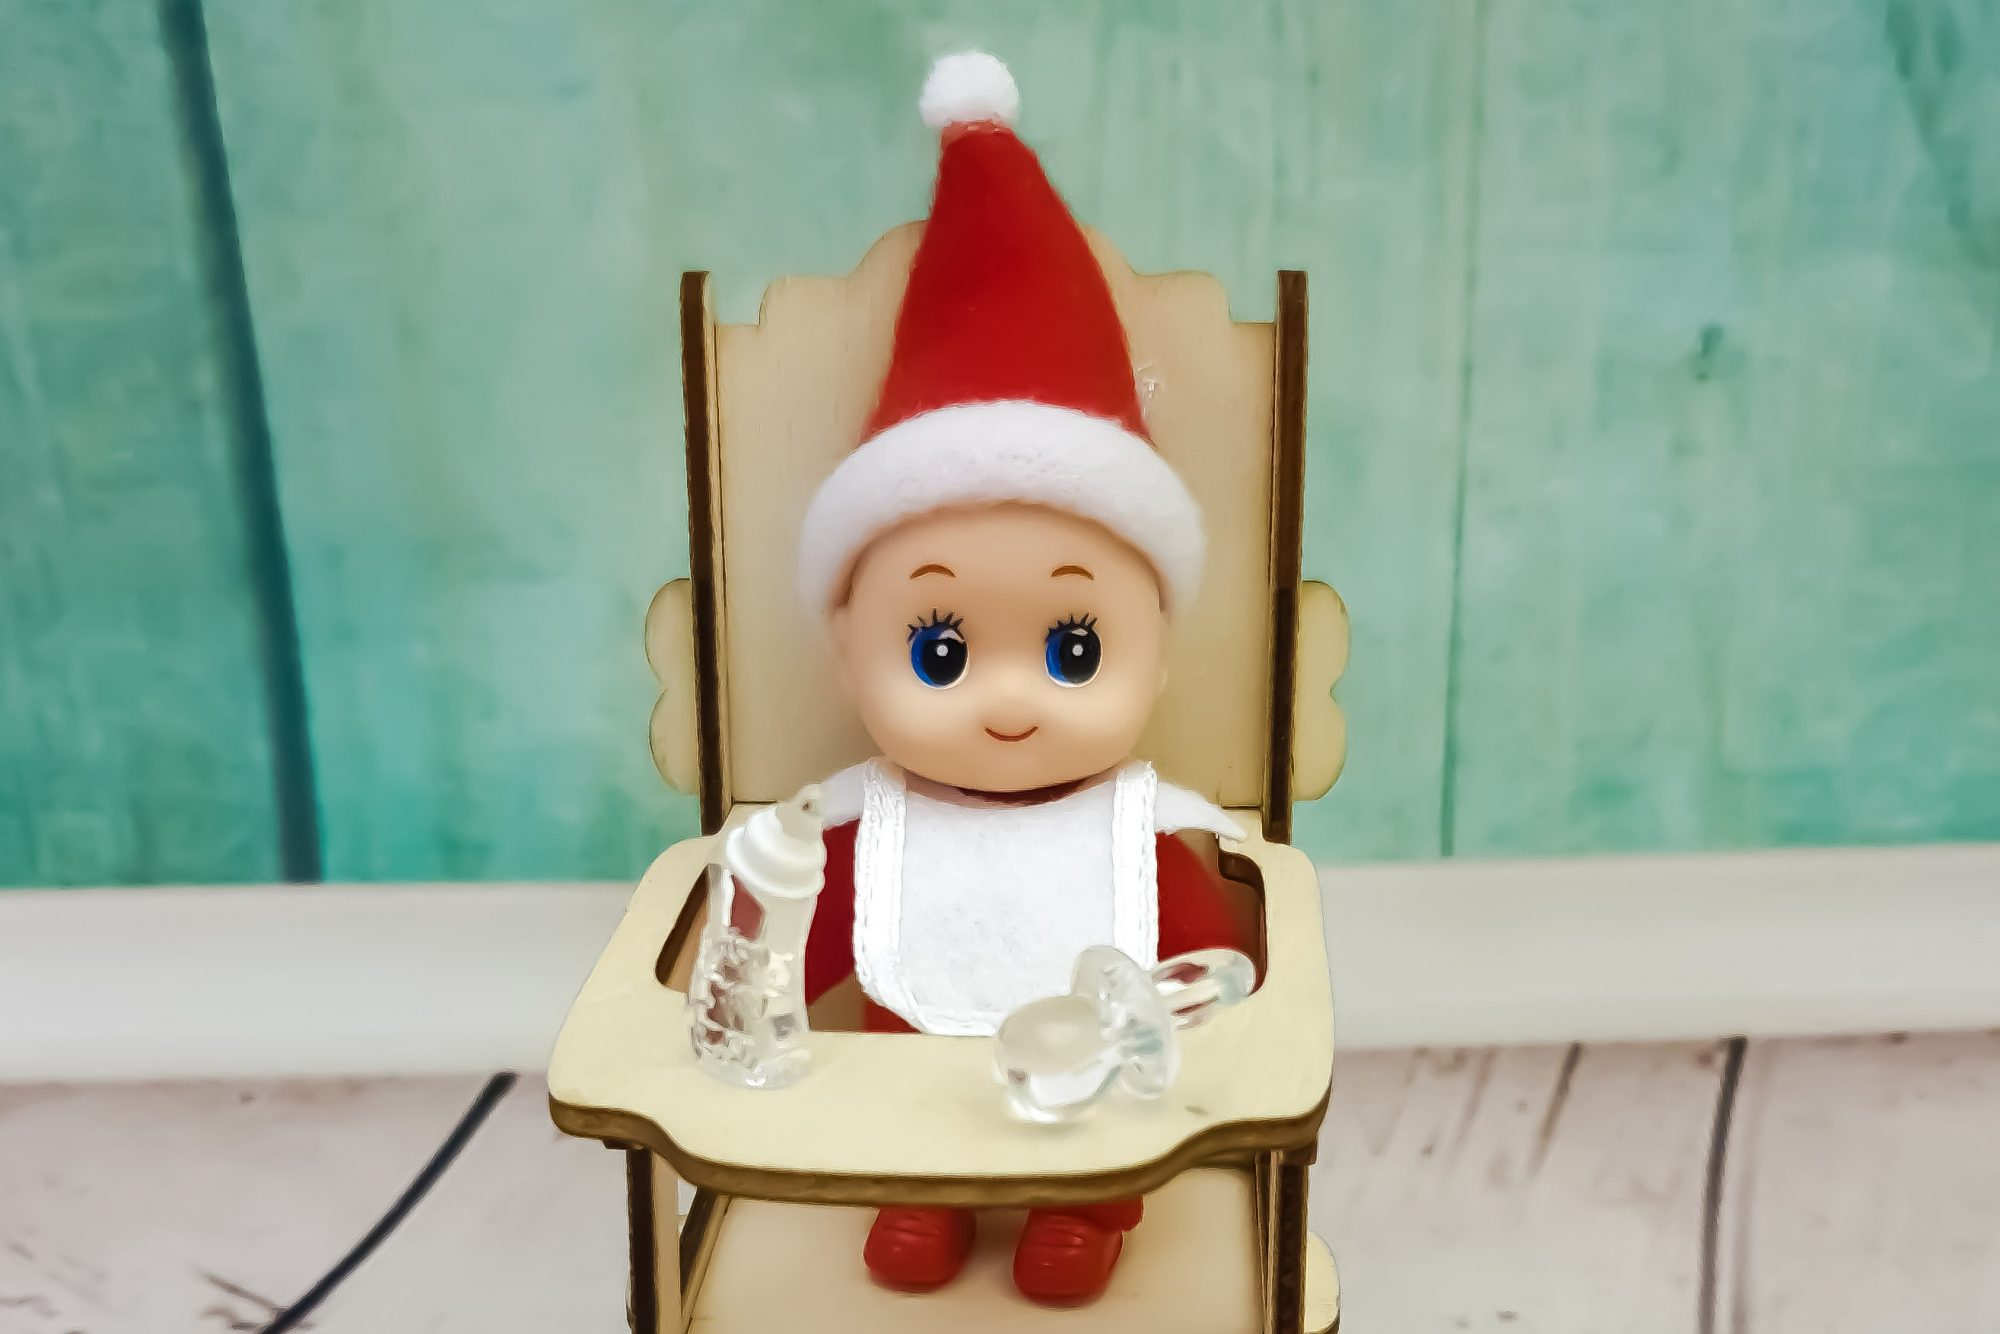 Elf on a shelf baby